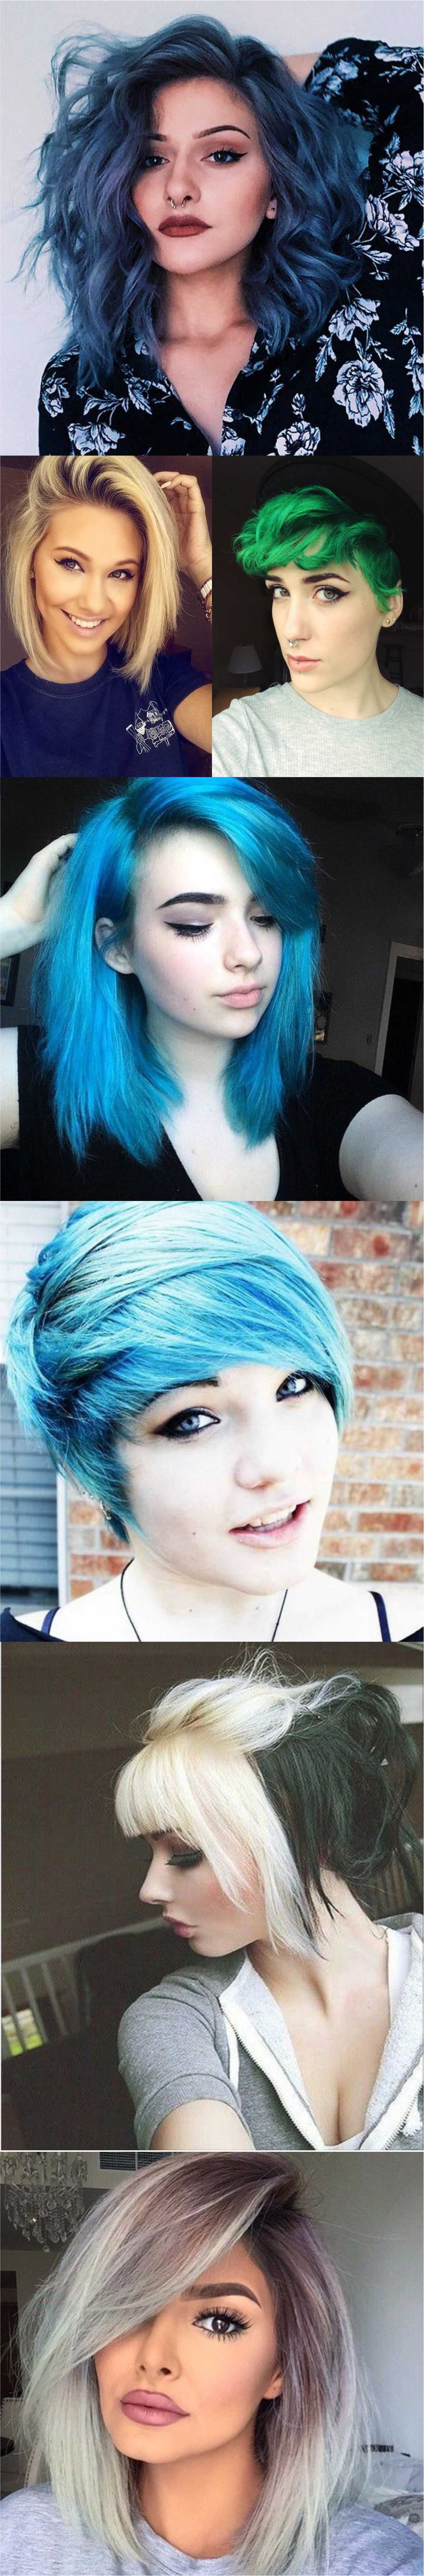 New Colourful Hairstyles for girls 2018